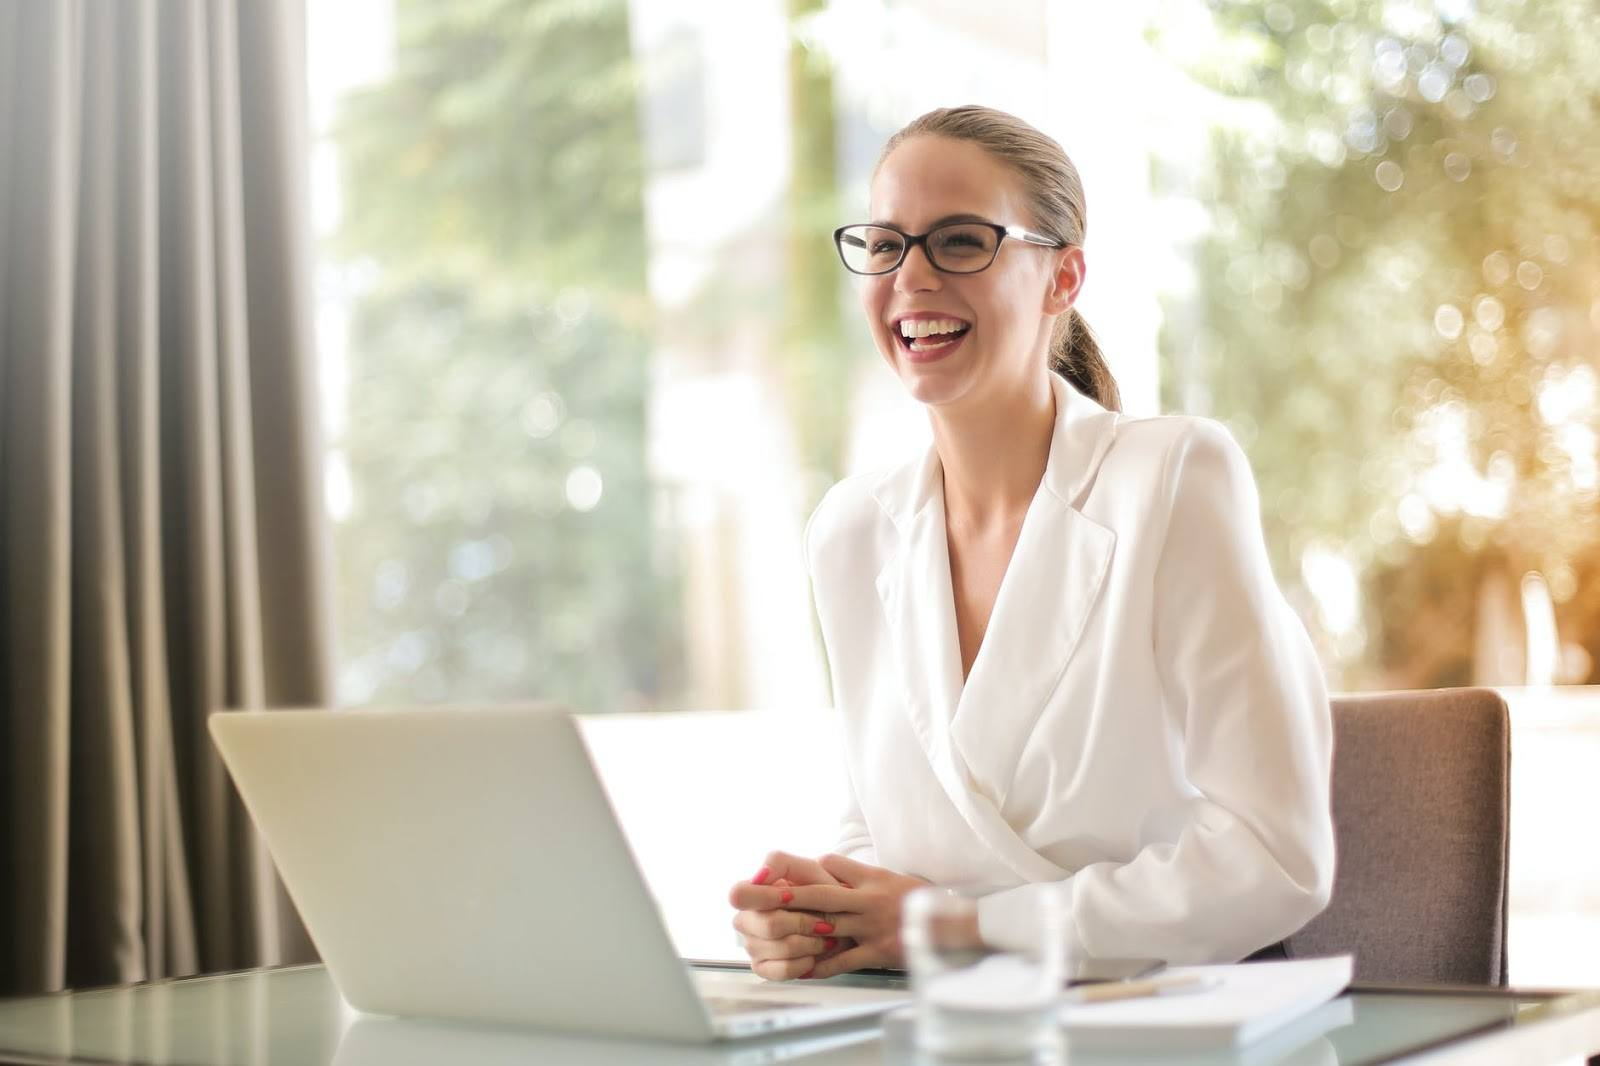 laughing-businesswoman-working-in-office-with-laptop finding a meaningful career